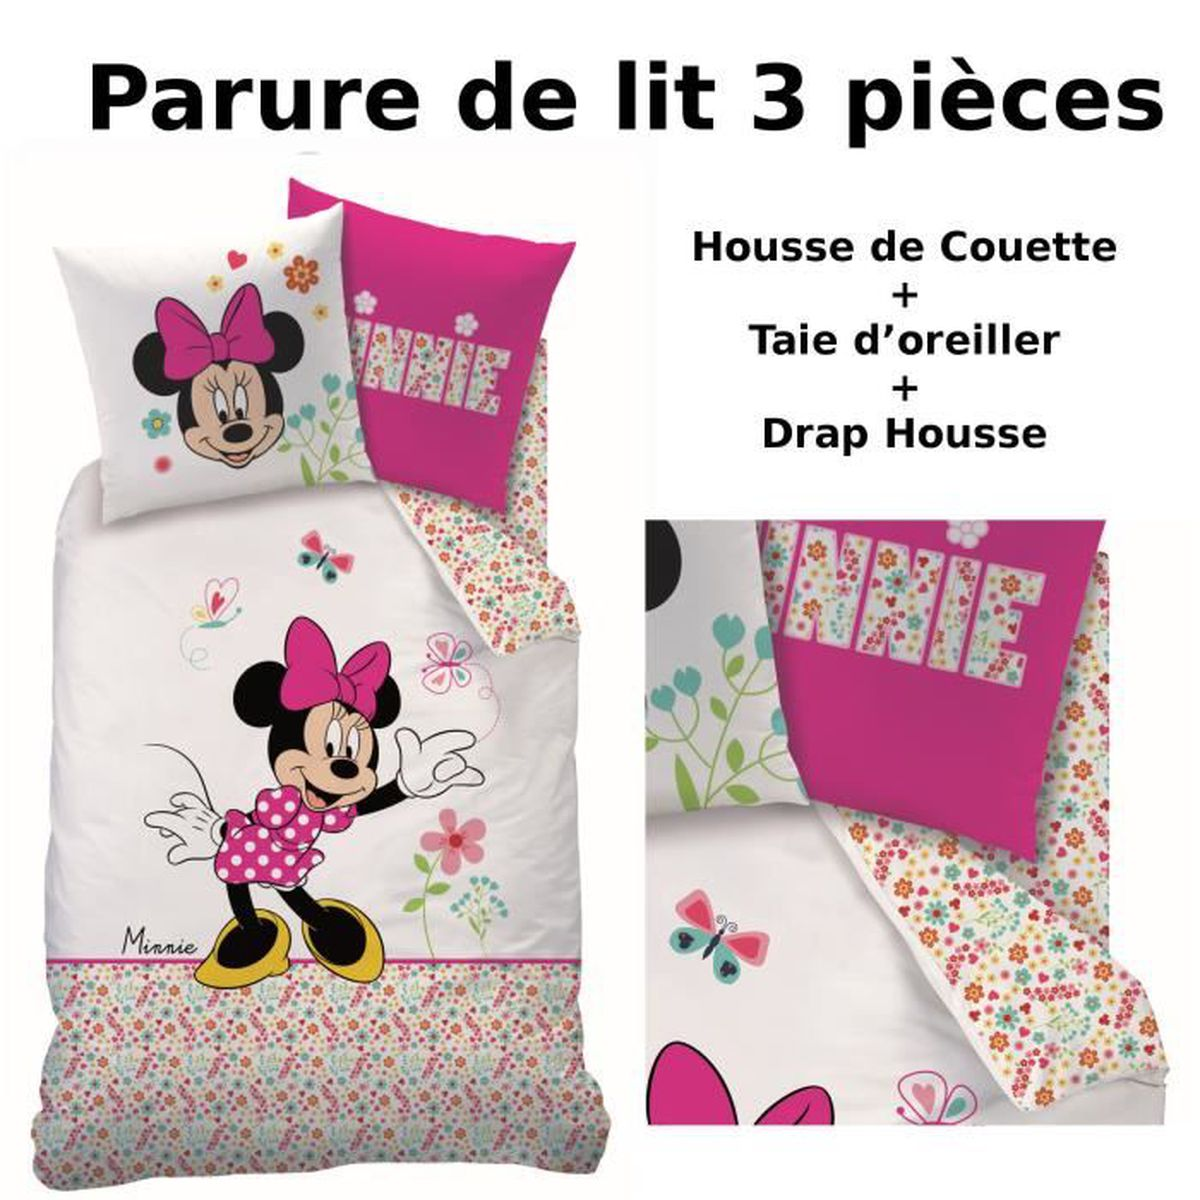 drap housse minnie achat vente drap housse minnie pas cher cdiscount. Black Bedroom Furniture Sets. Home Design Ideas